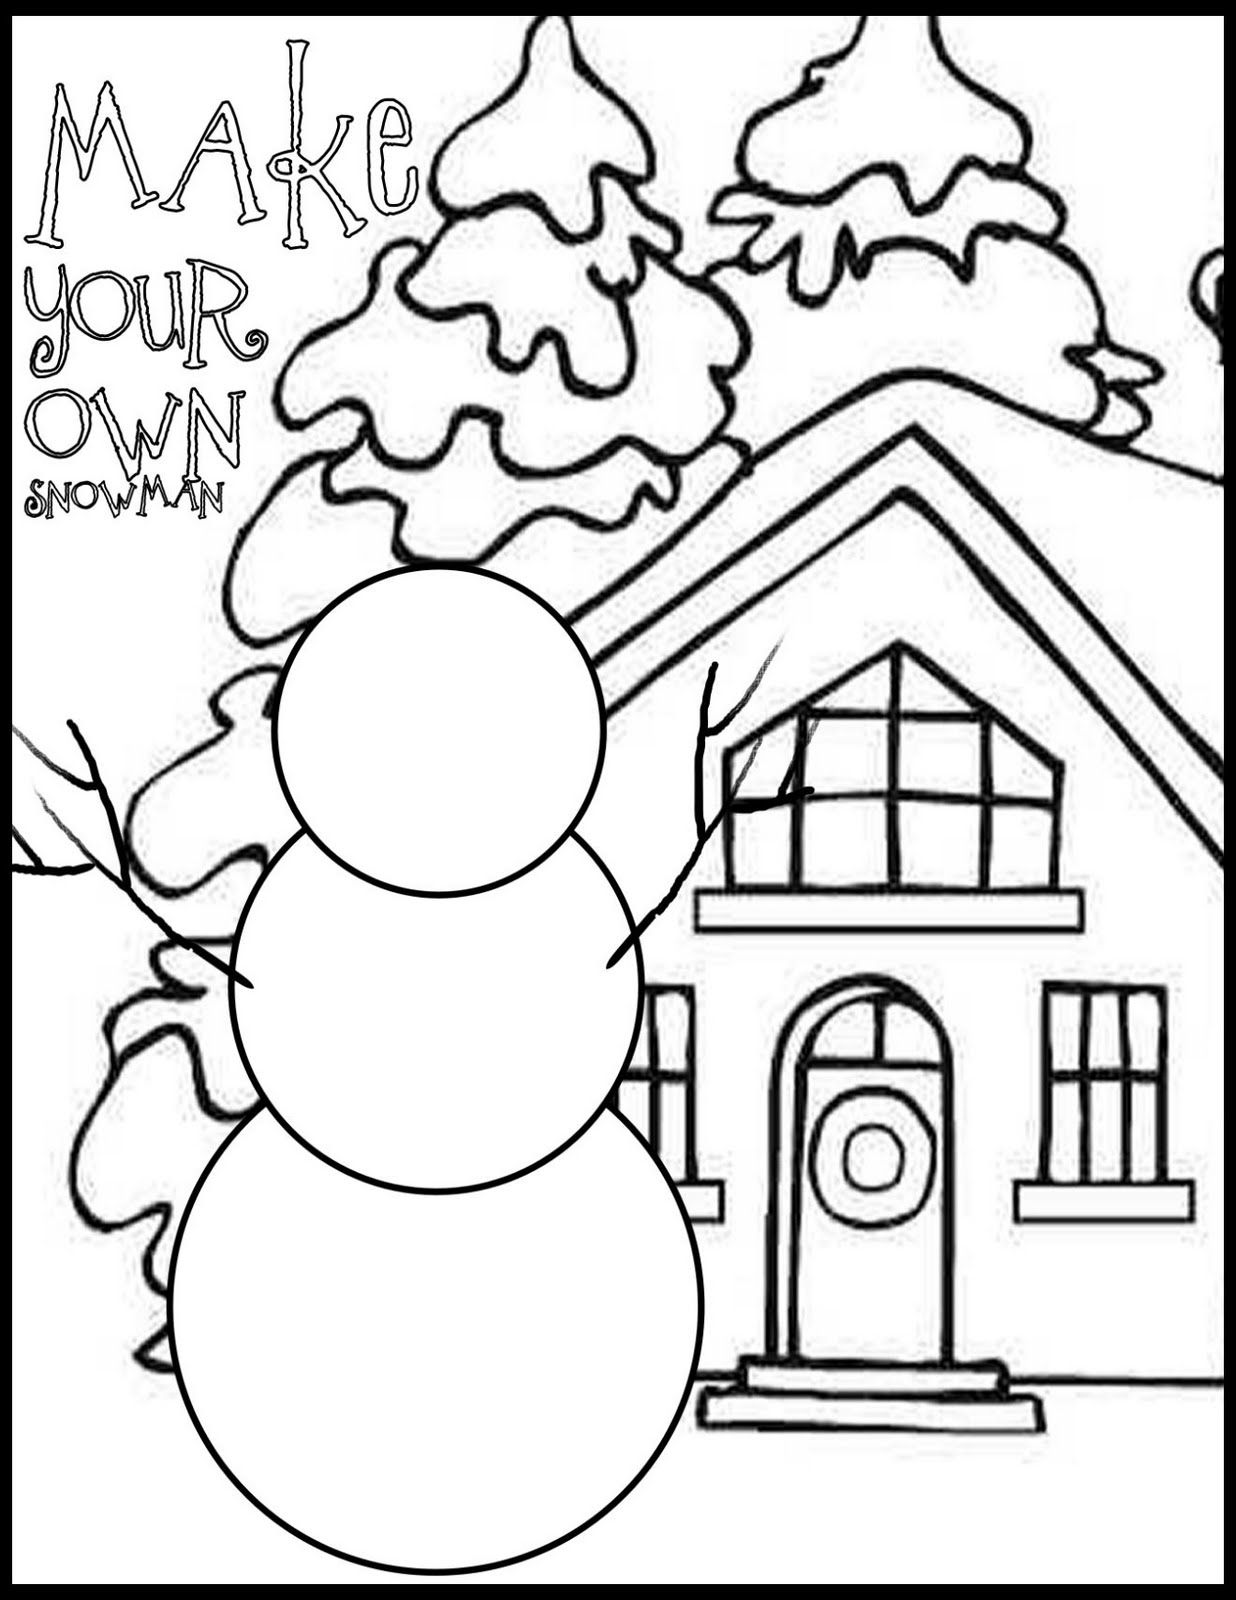 Everyday Mom Ideas: Draw Your Own Snowman Coloring Page ...